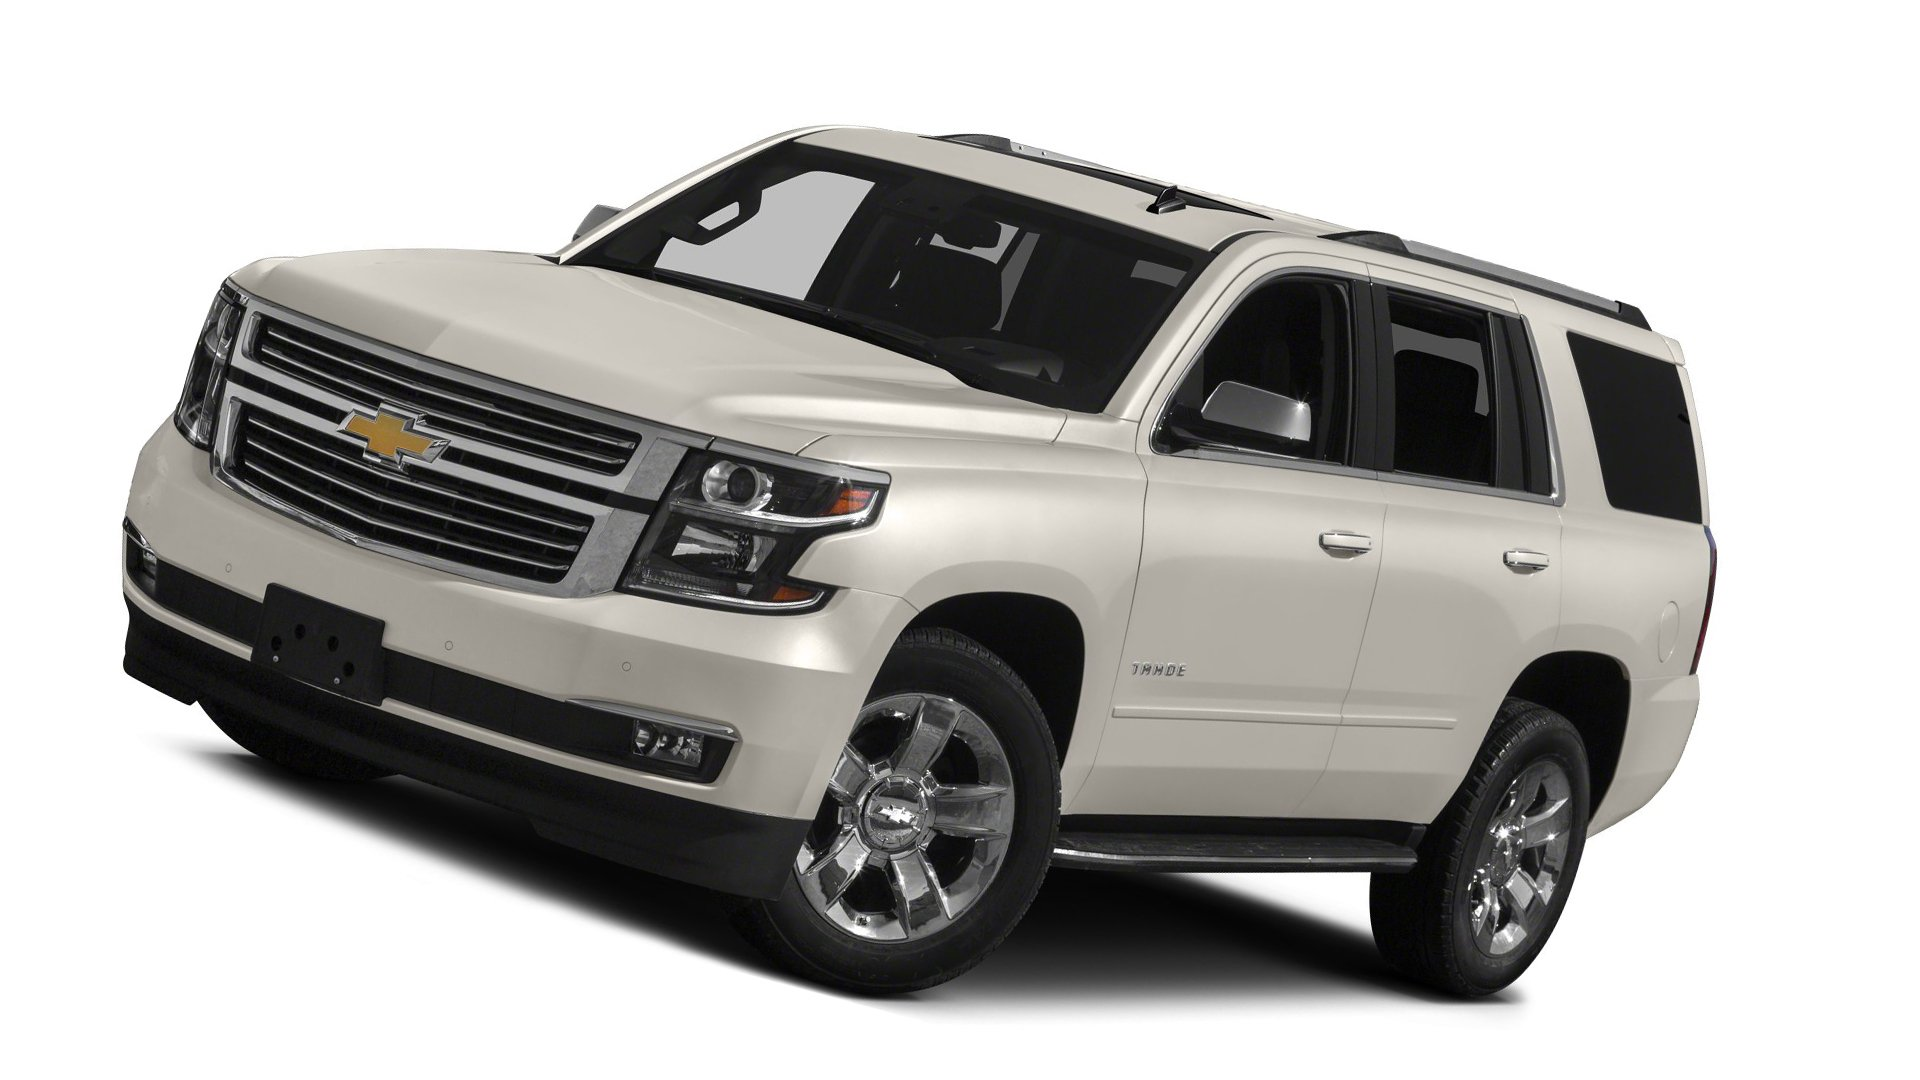 New 2019 Chevrolet Tahoe Price